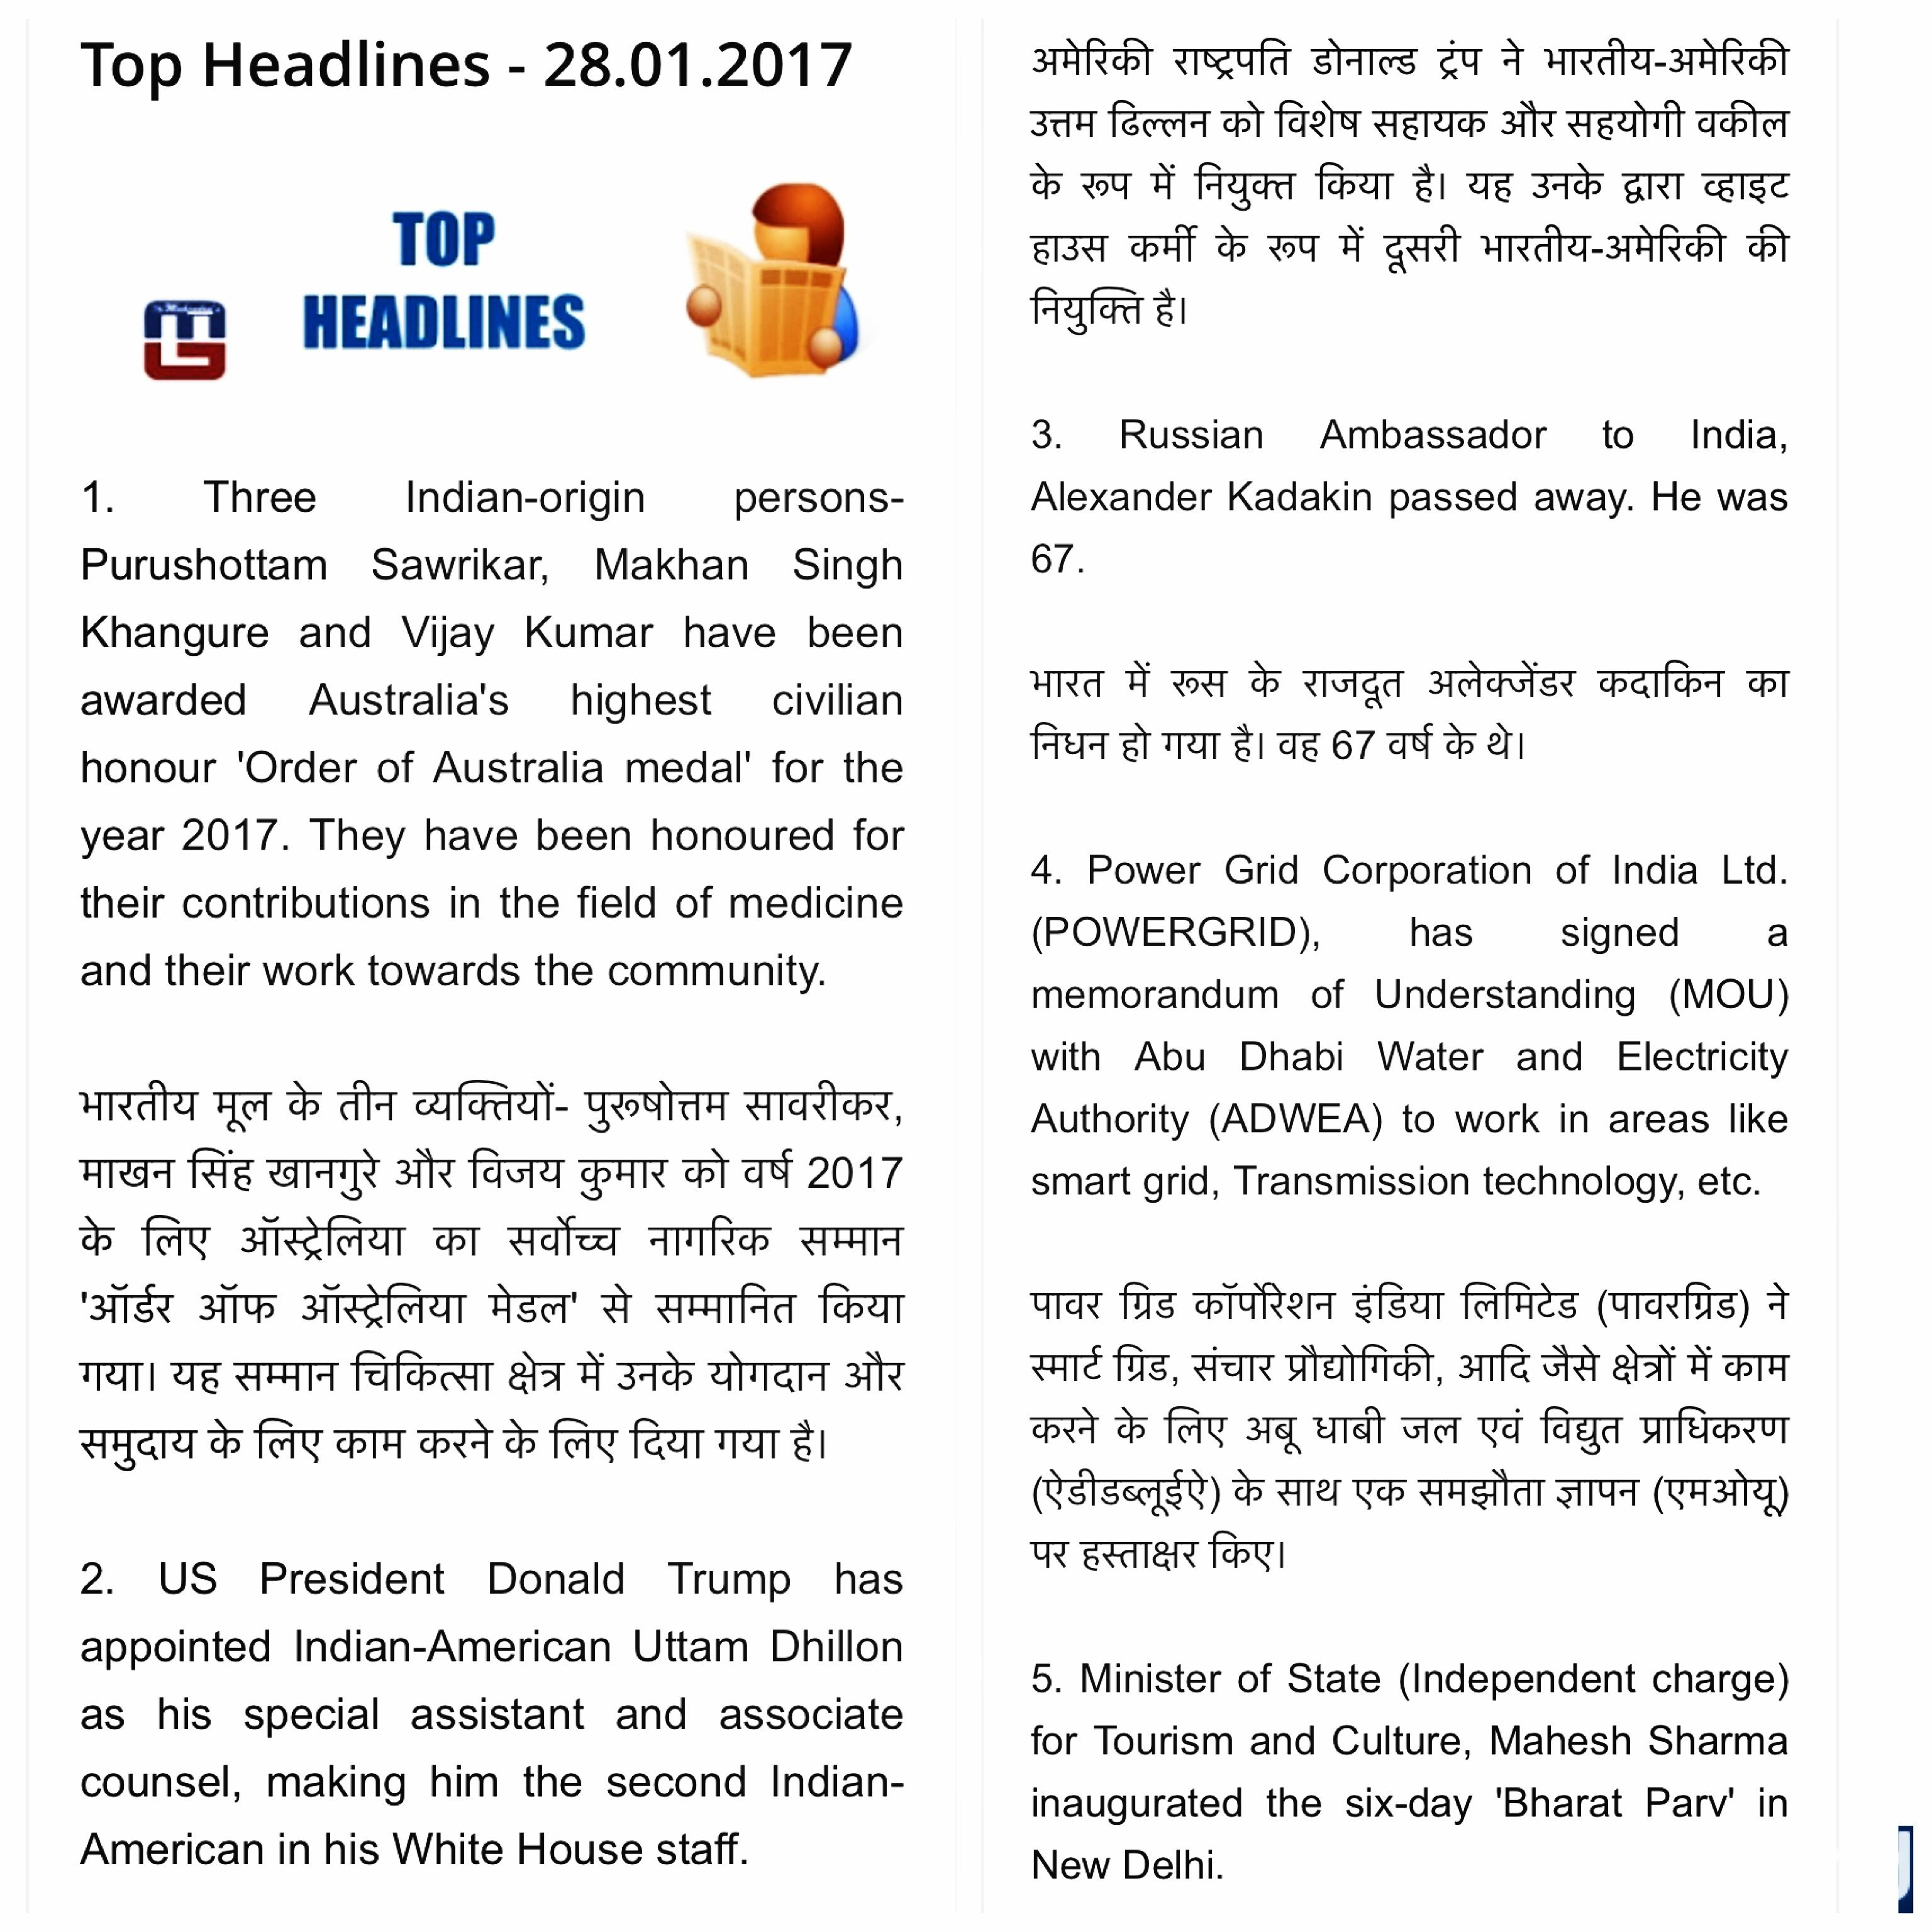 Pin by Mahendras on Daily Top Headlines | Latest updates